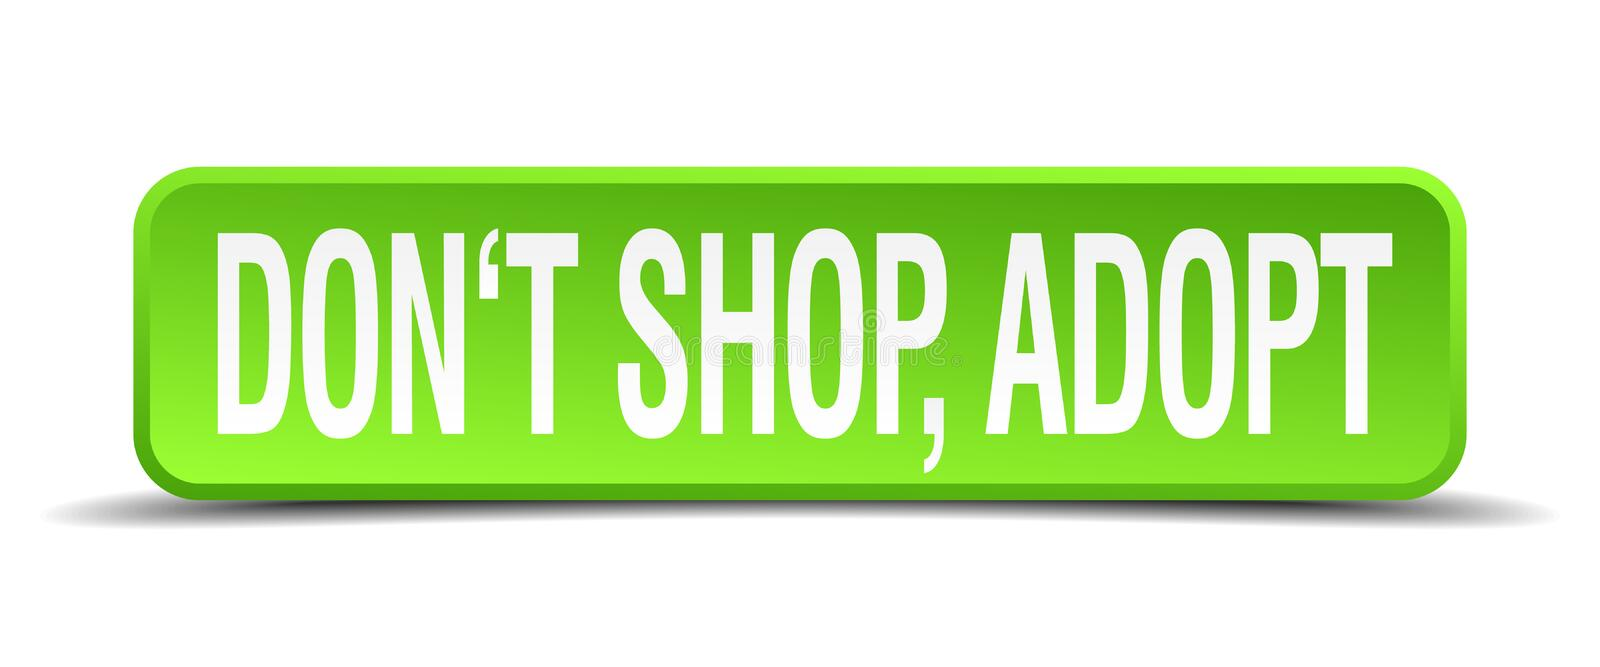 dont shop adopt green 3d square isolated button vector illustration